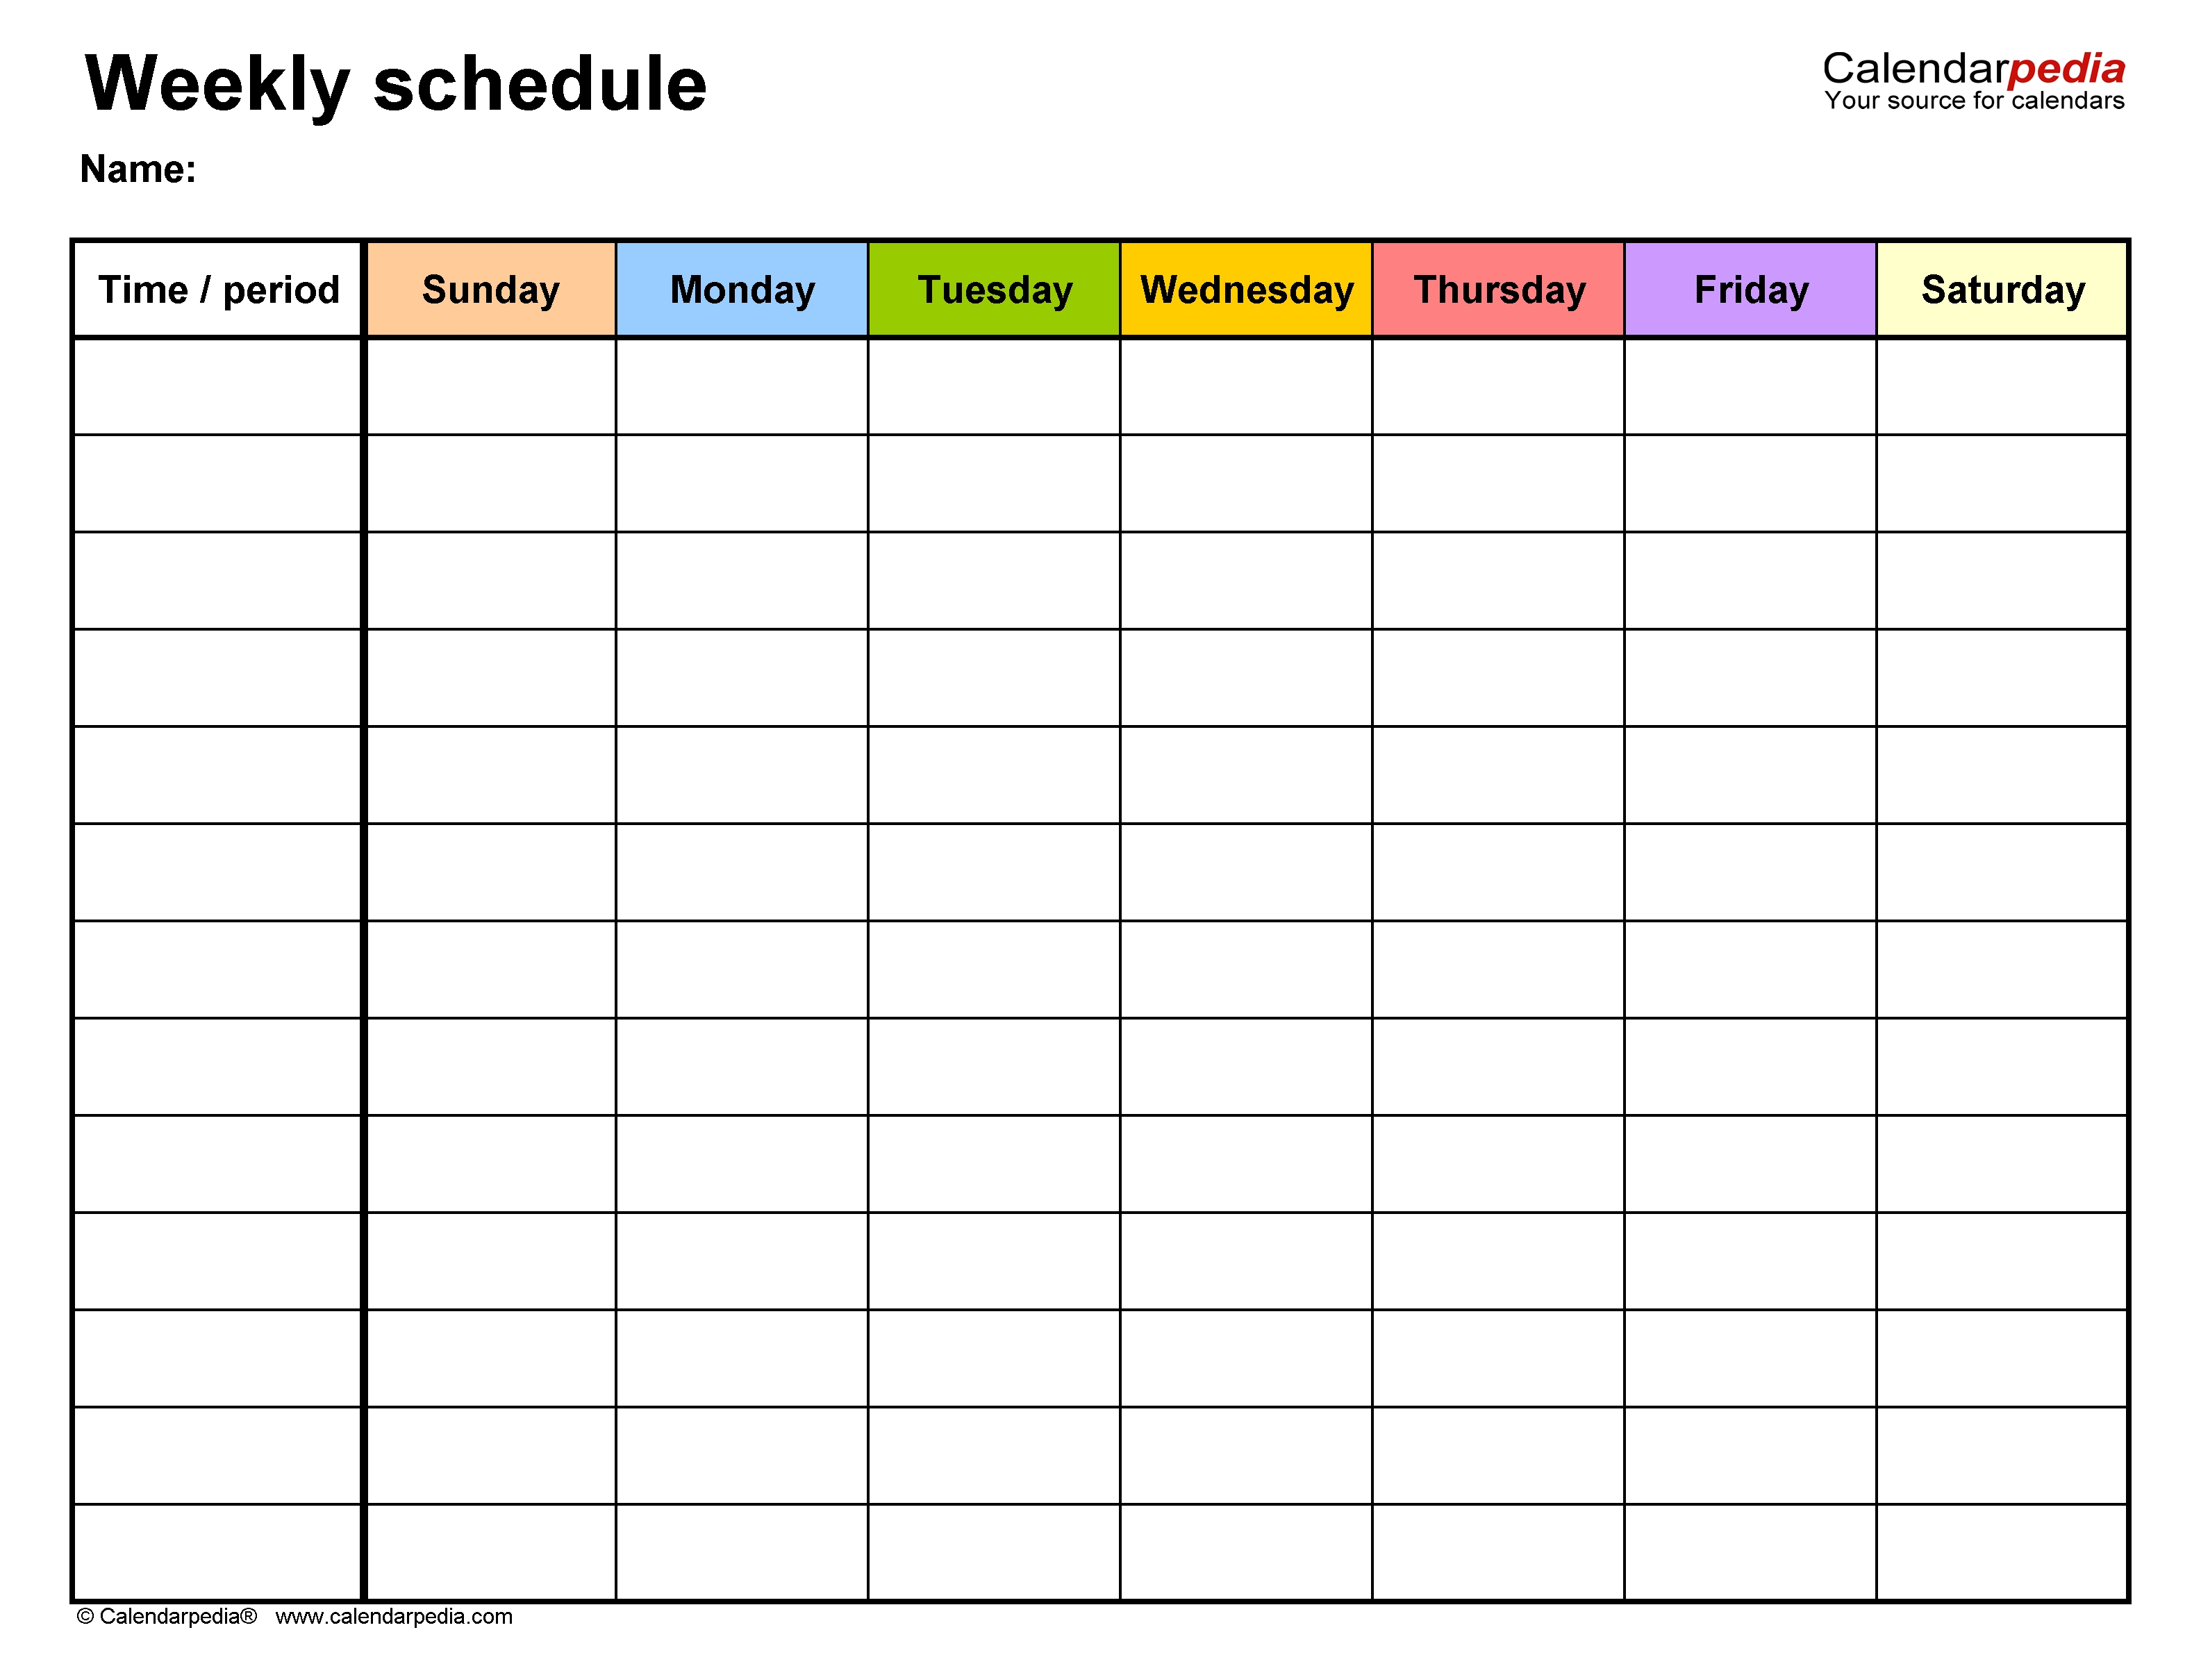 Free Weekly Schedule Templates For Word - 18 Templates 7 Day A Week Calendar Template